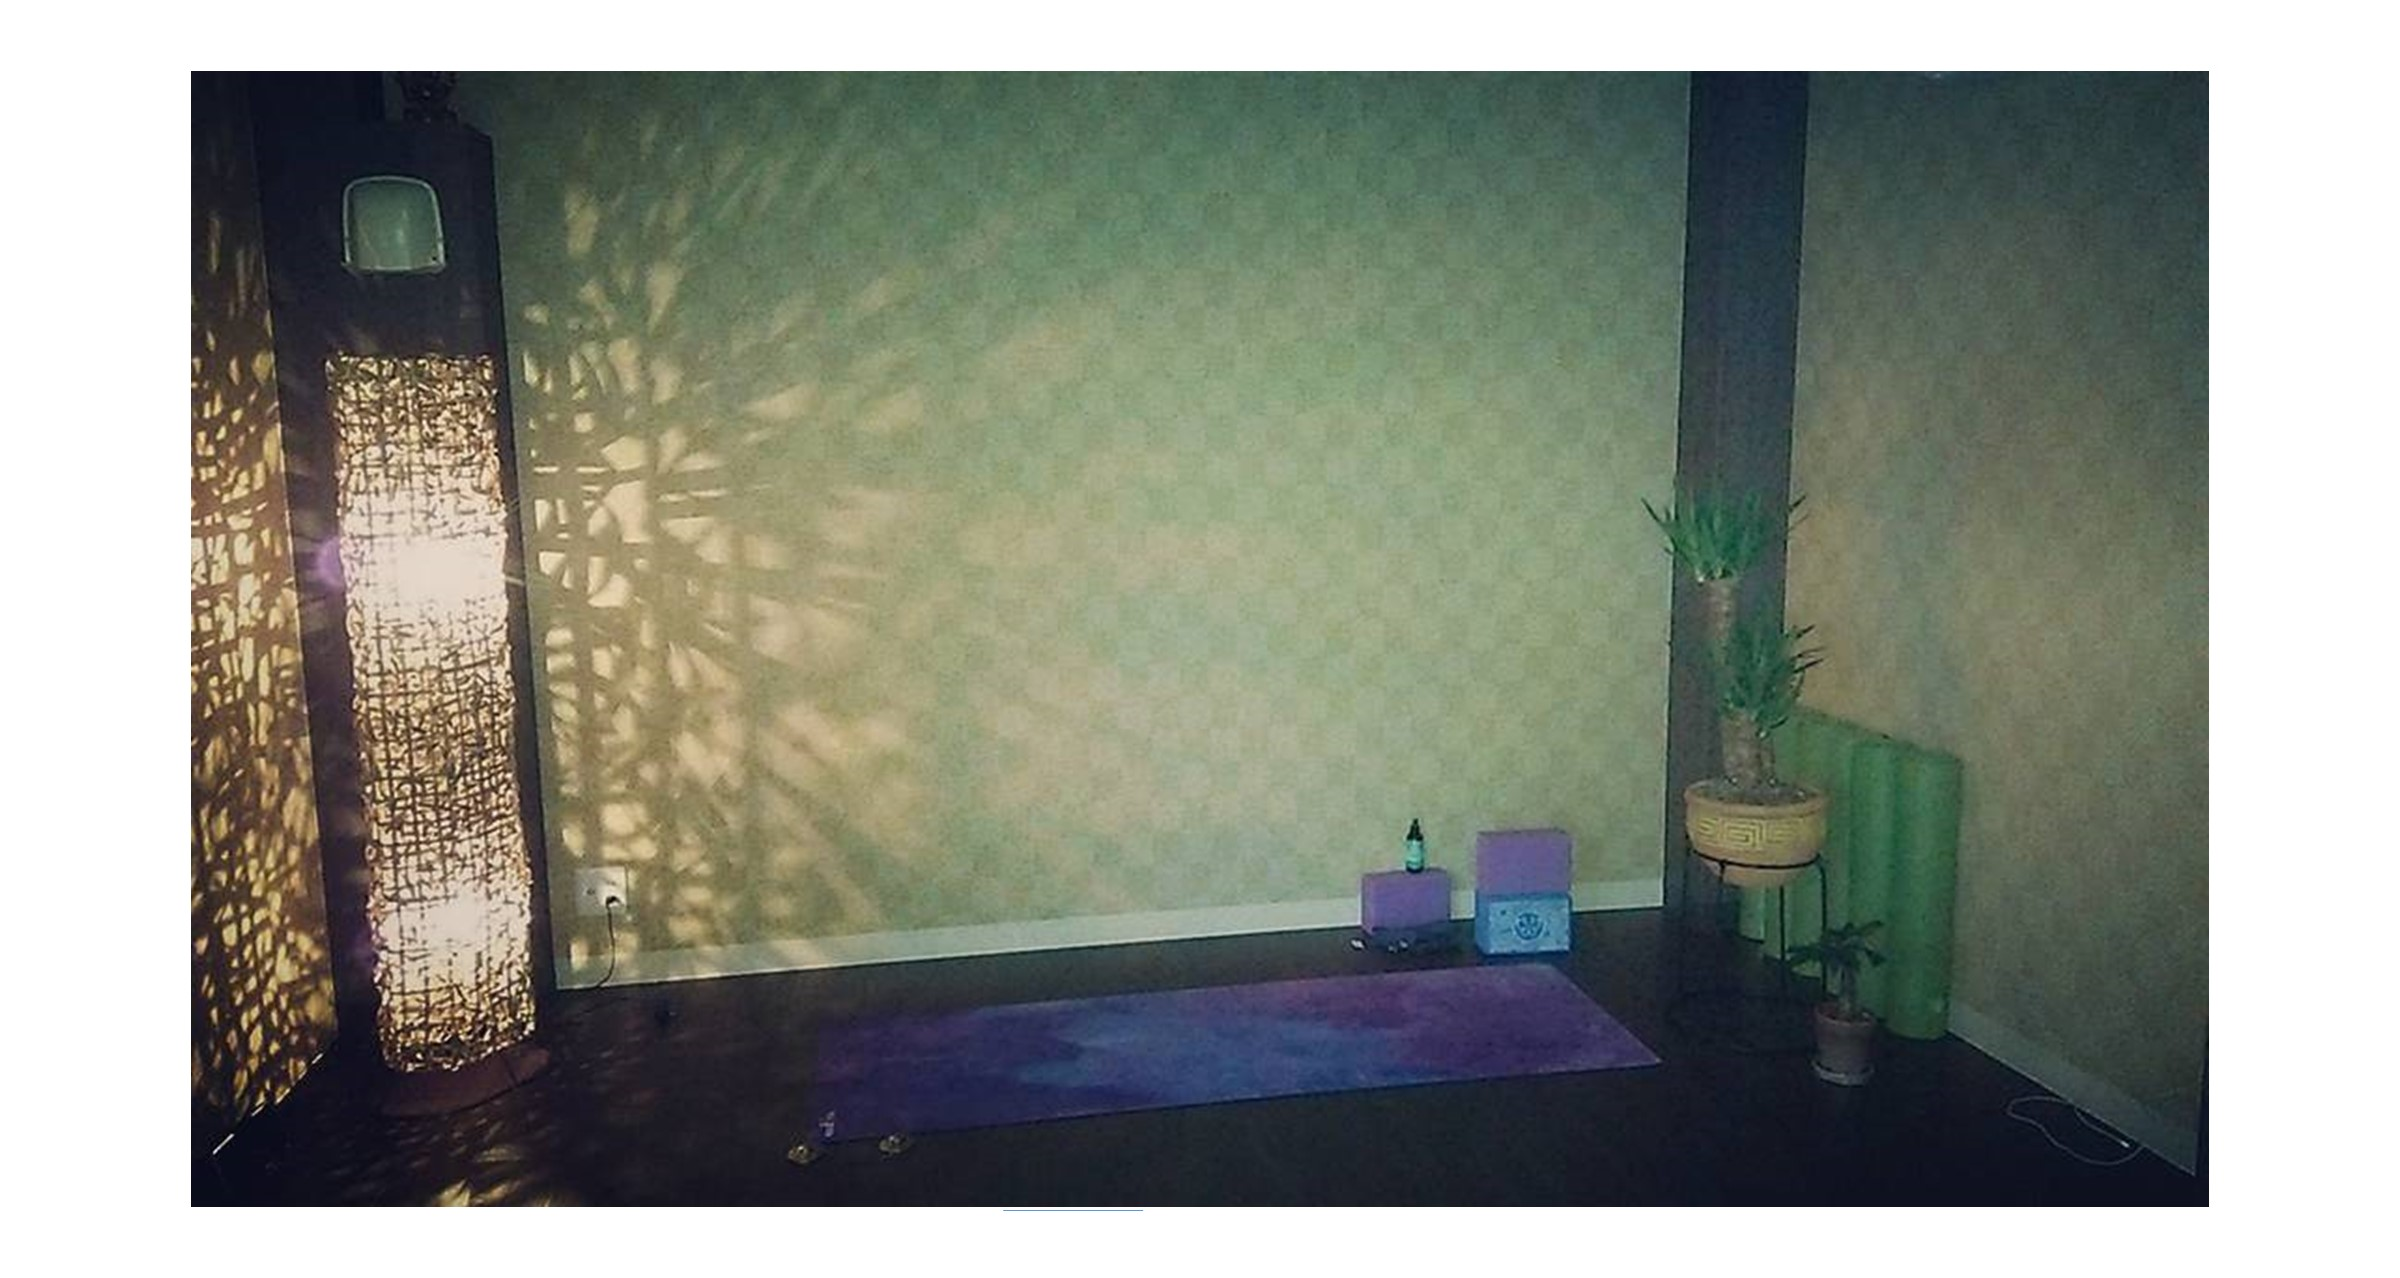 Yoga Studio Yinner bright